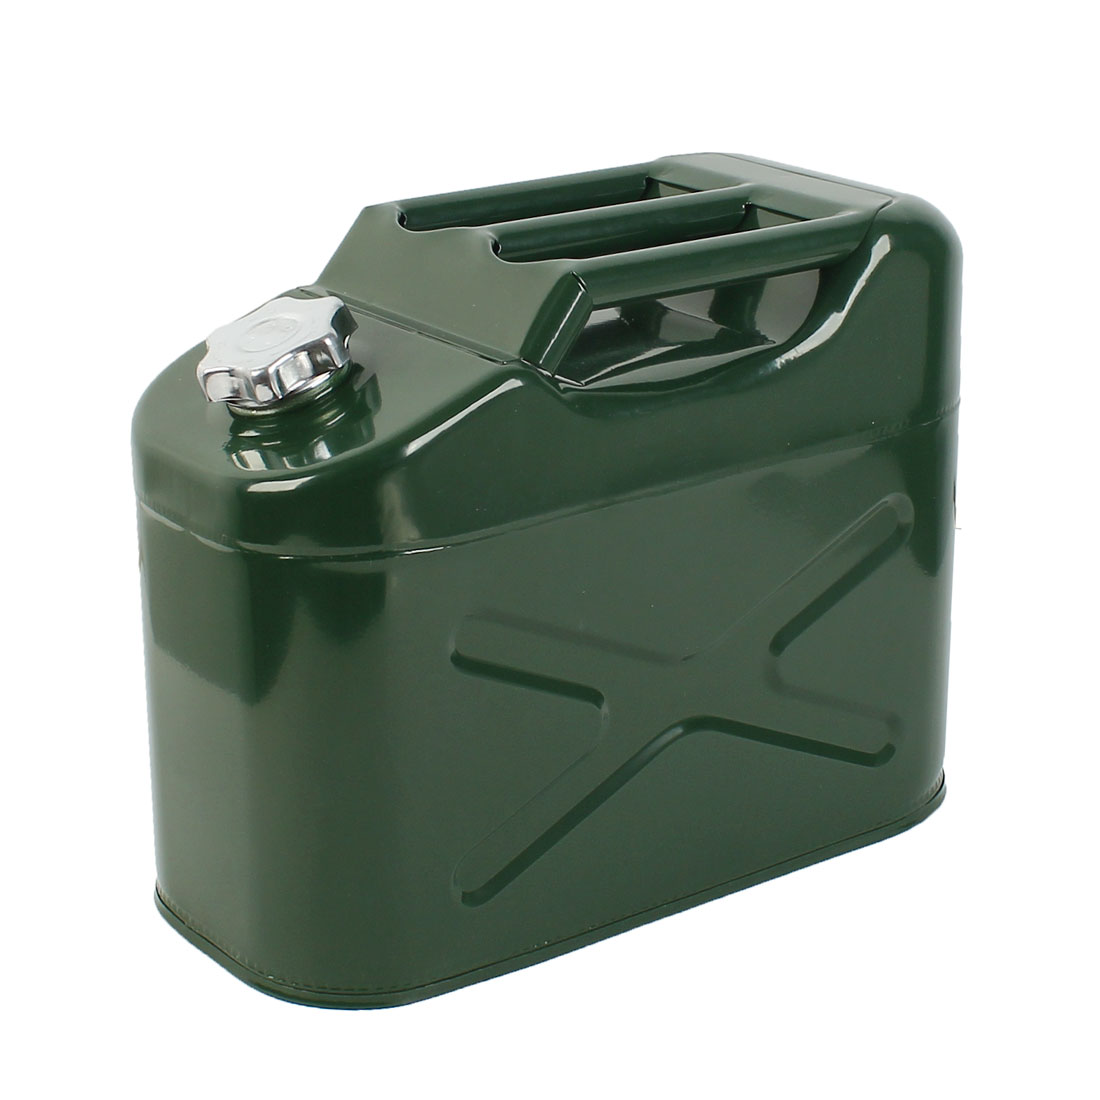 20L Army Green Metal Fuel Jerry Can Petrol Diesel Water Oil 20 Loter Container Car